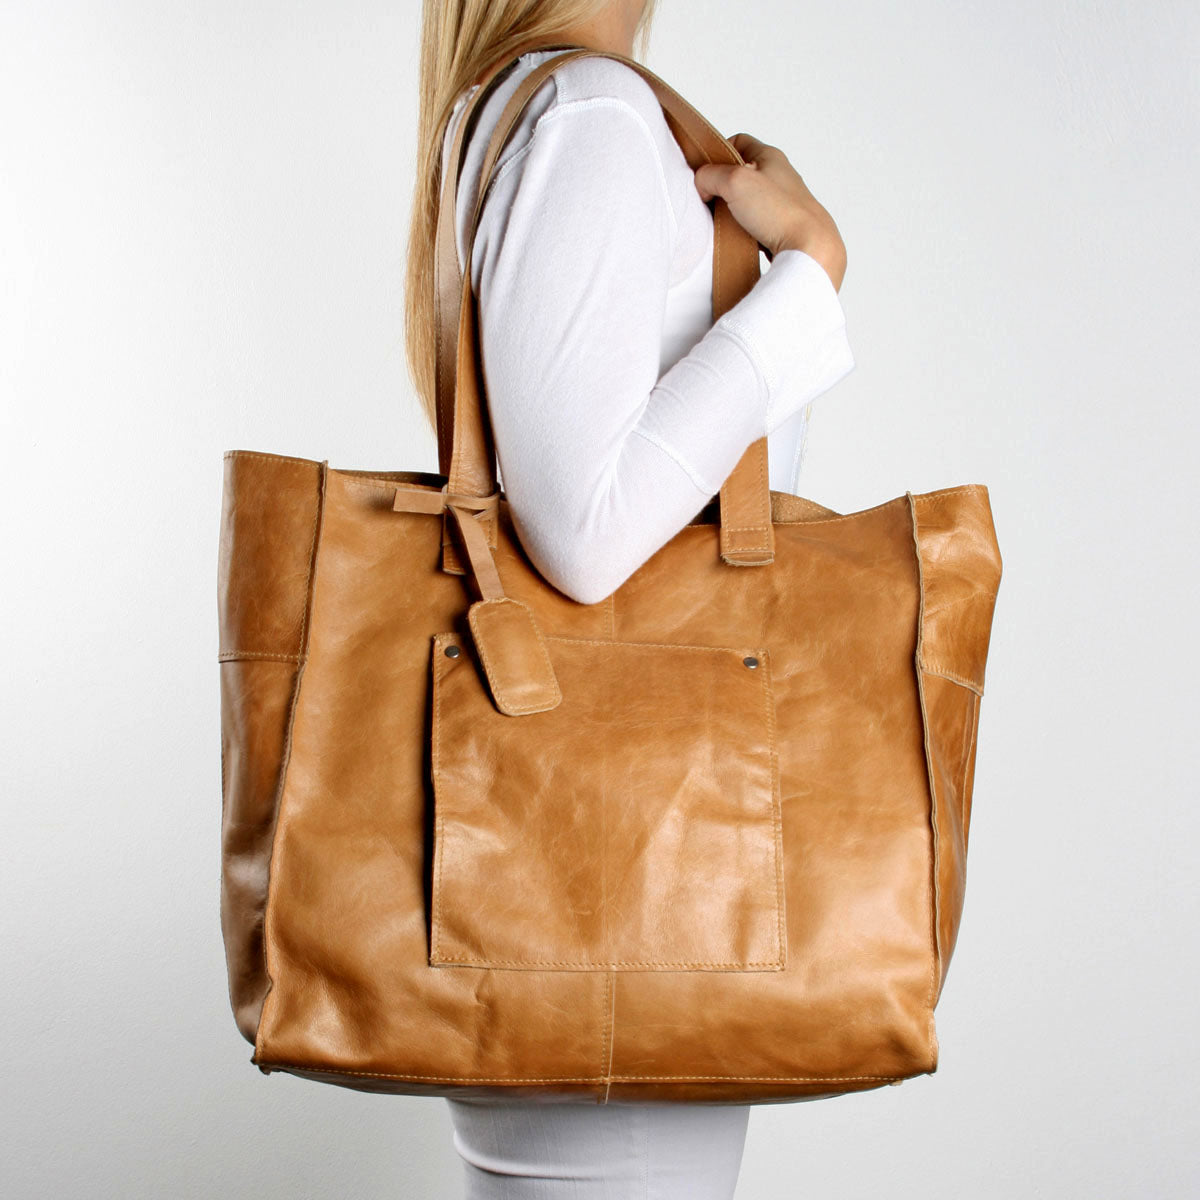 Thandana Raw Tote Bag - Black - Zufrique Boutique